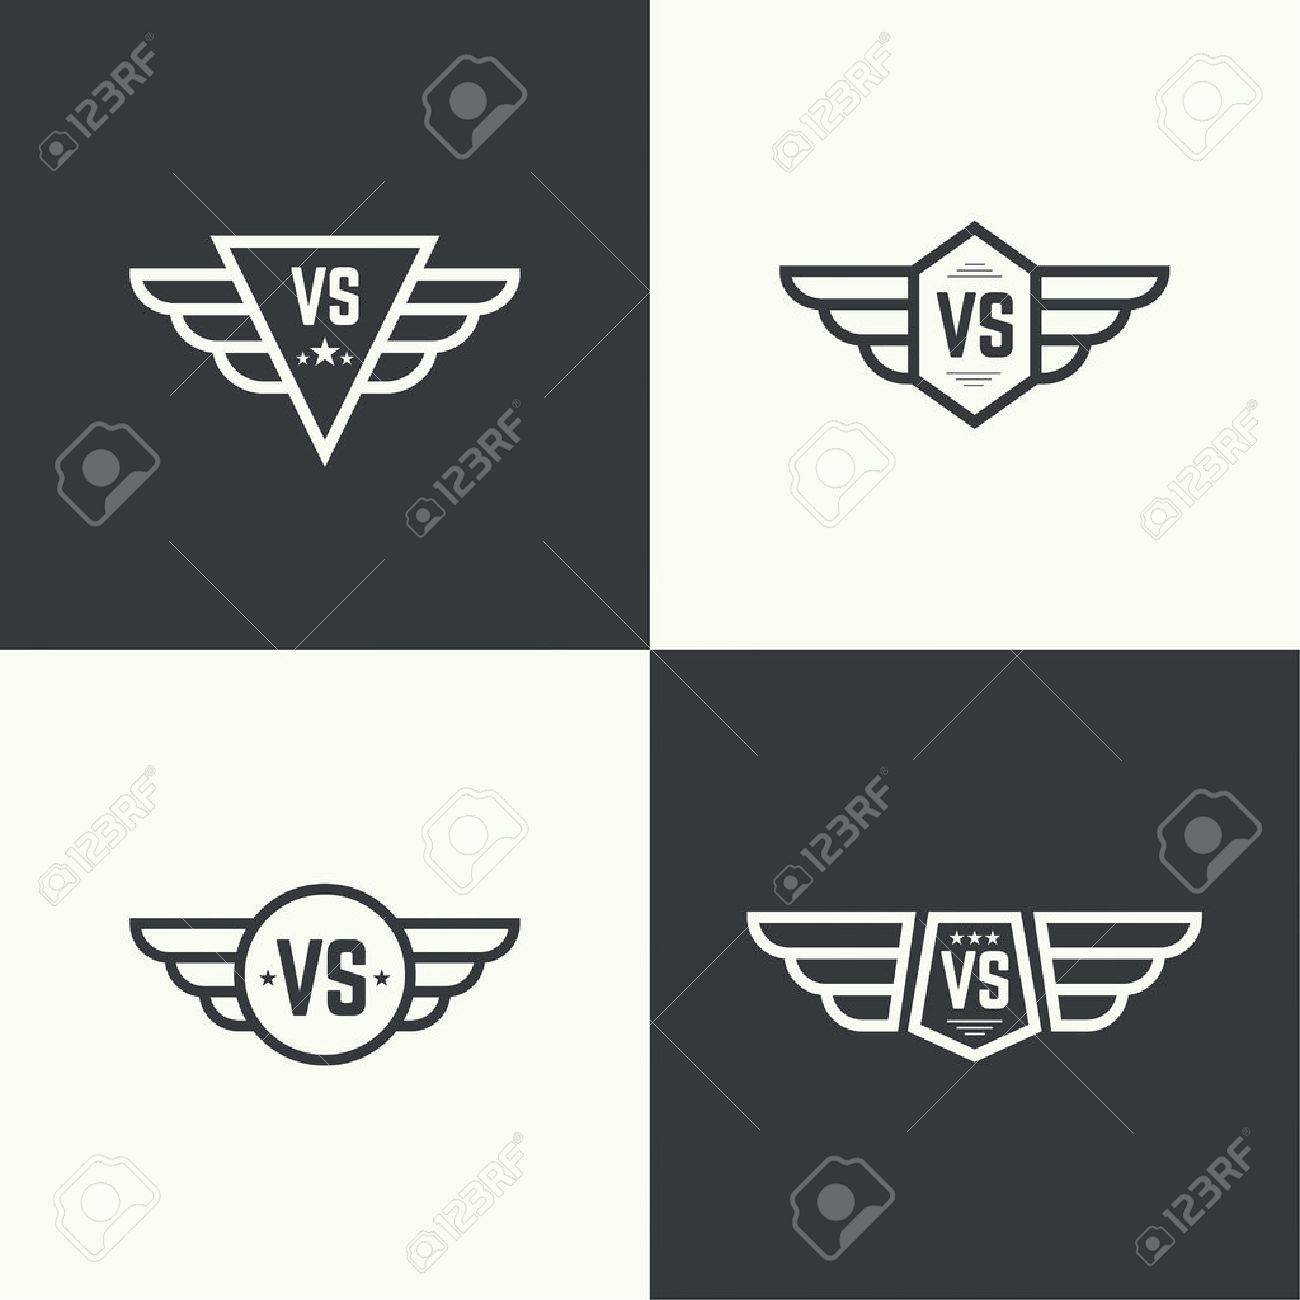 Versus sign. Badge with wings. Concept of opposition, battle, confrontation - 48203754